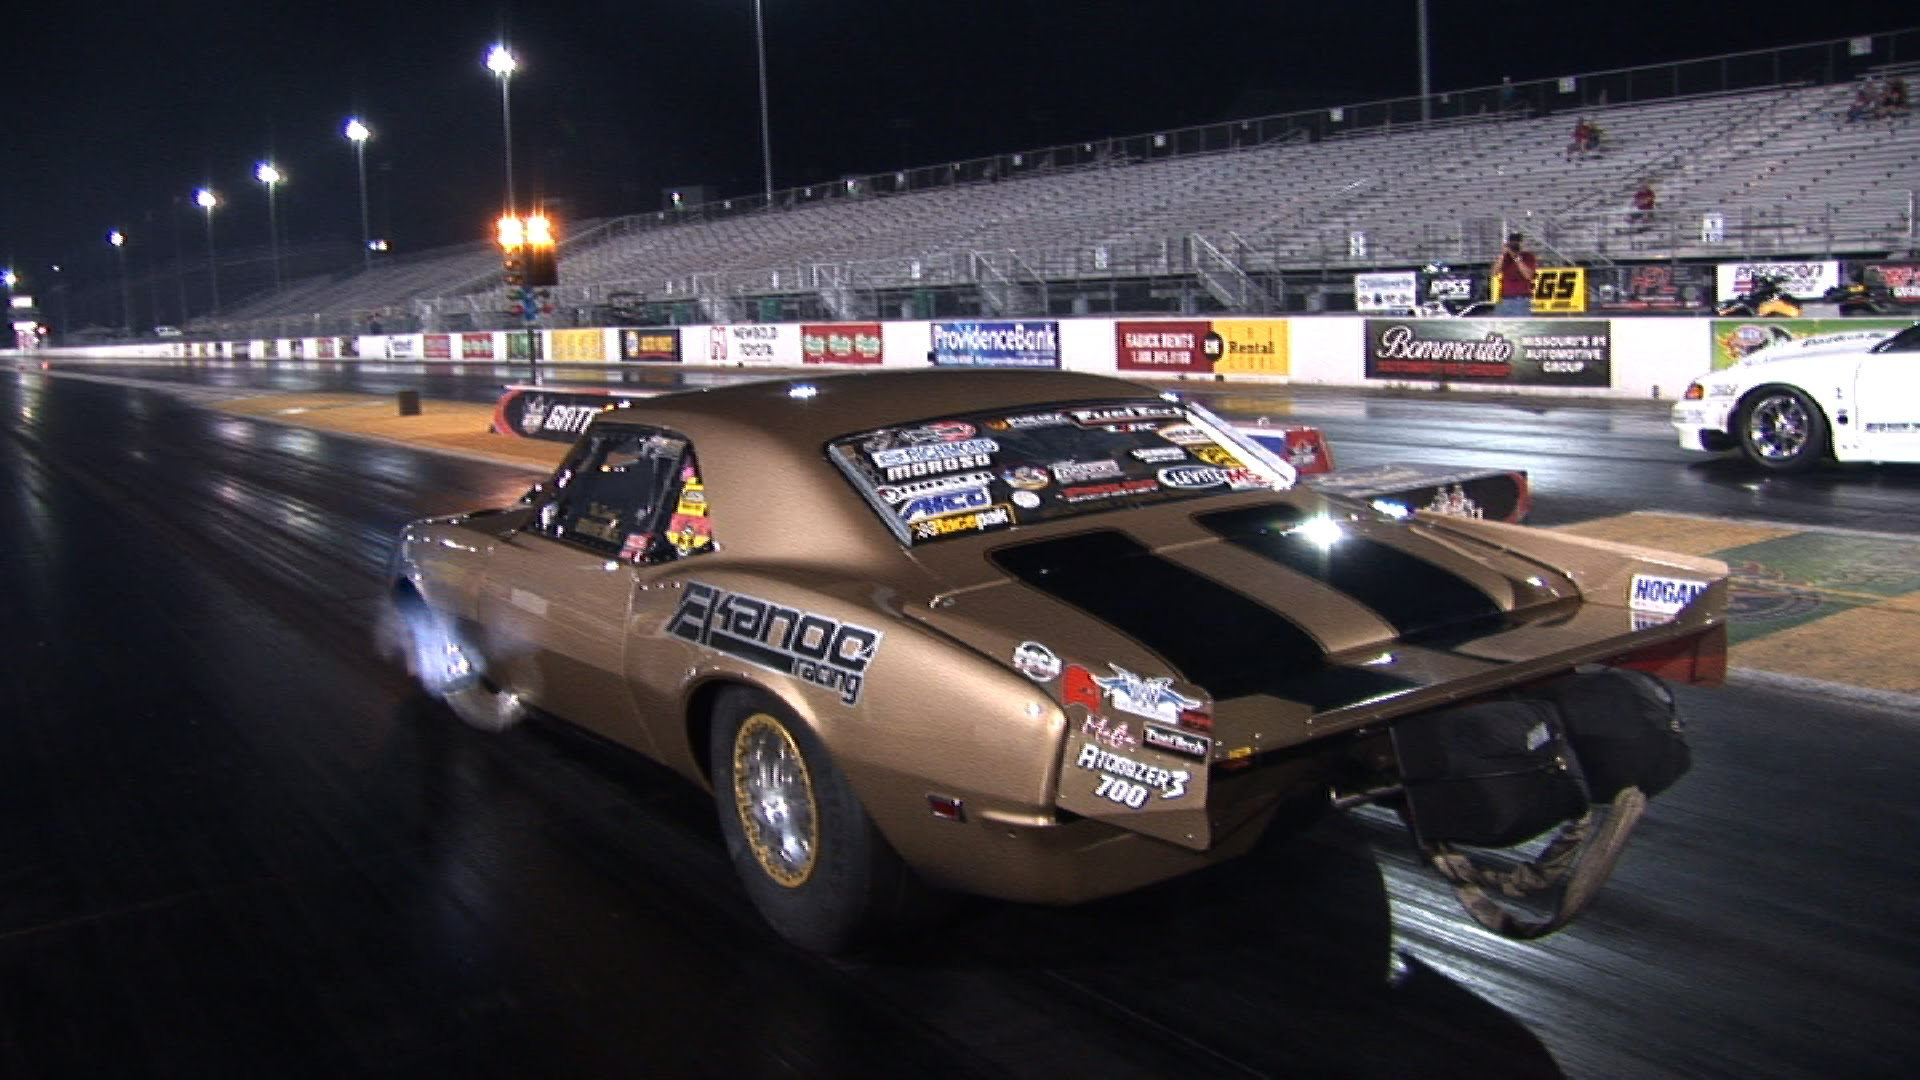 Classic Camaro Posts New WR for Eighth-Mile